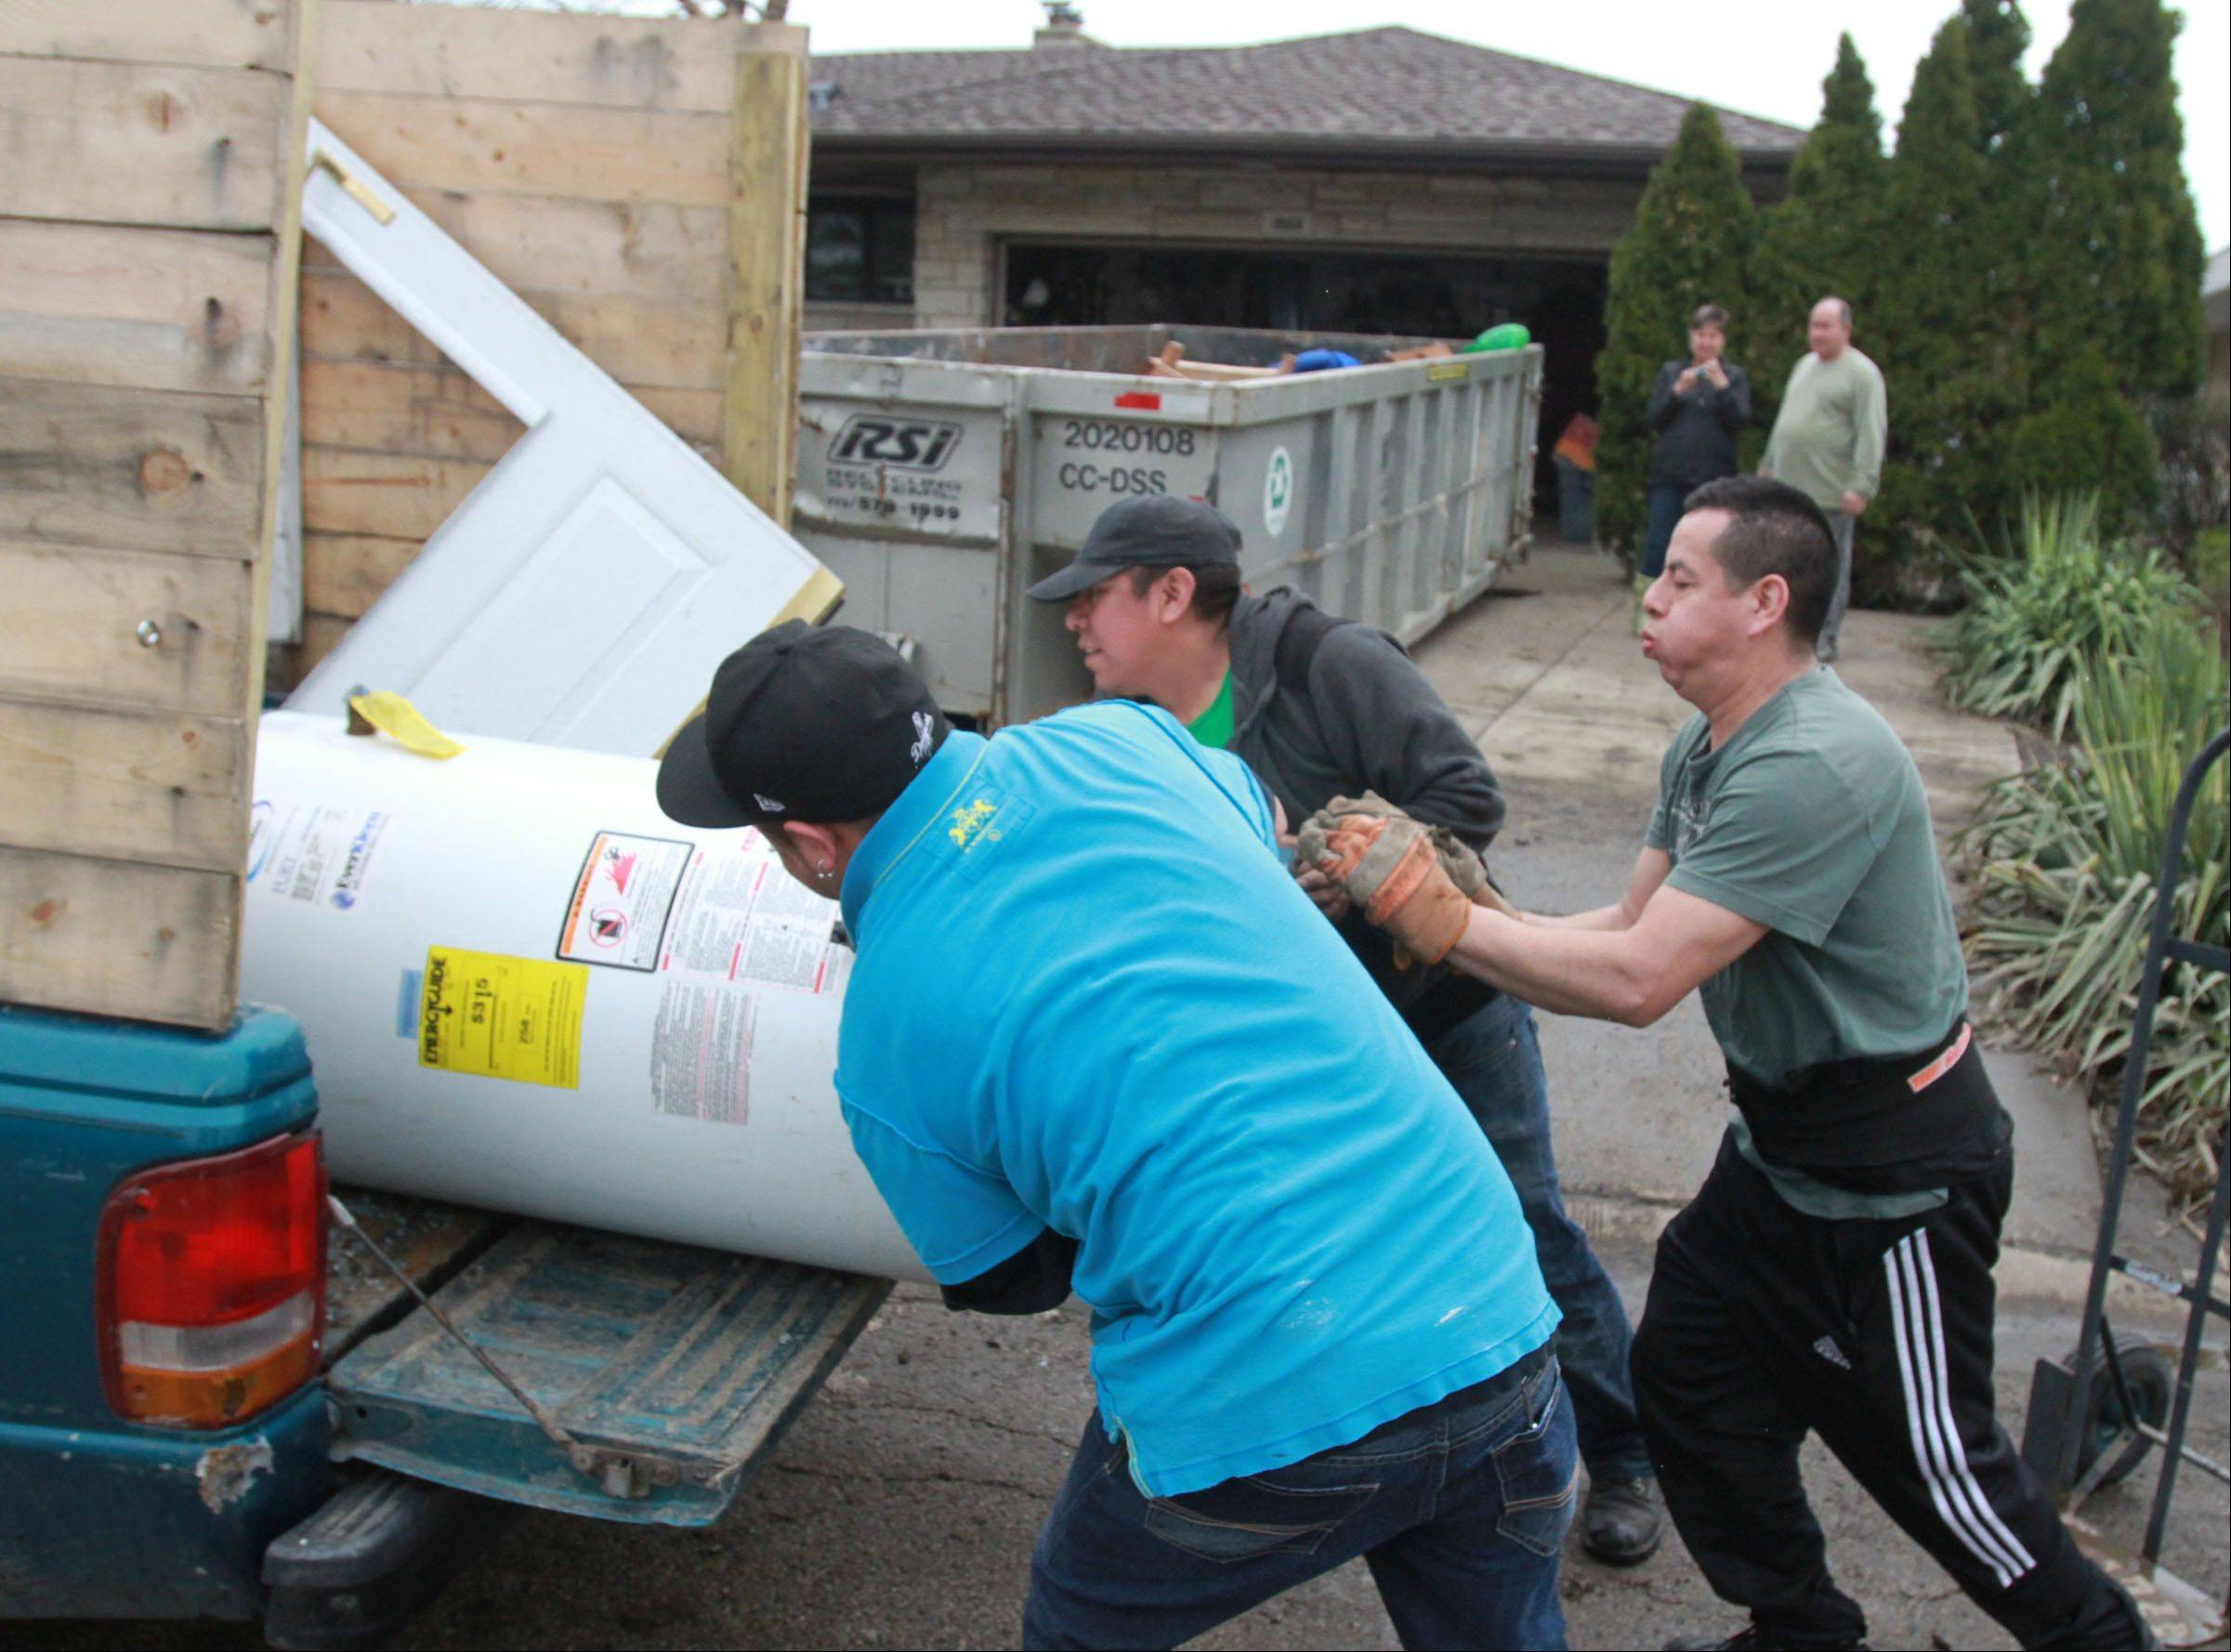 Danny Mateos, foreground, Paco Matoes, and Alex Ramirez, right, with Arthur J. Rogers and Company, remove a hot water heater from the home of Kathi and Russell Fantetti, in background, on Berry Lane in Des Plaines Tuesday. Kathi Fantetti said they lost everything in the basement, including furniture, because of flooding.